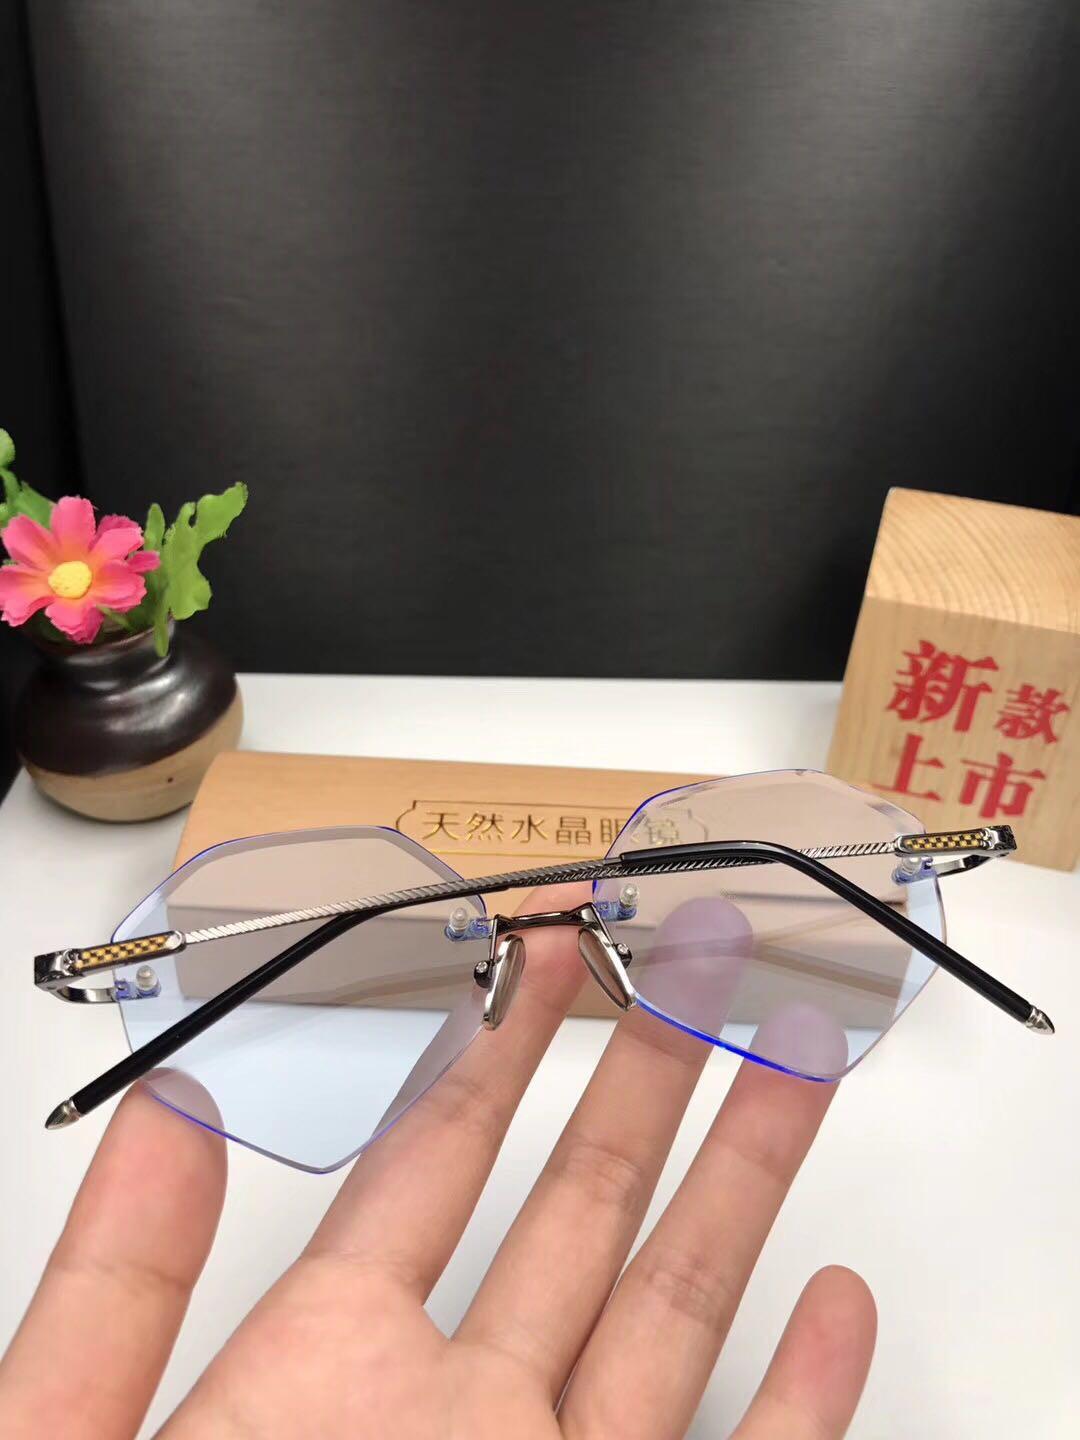 The glasses can be made of multi angle lens with non fixed angle